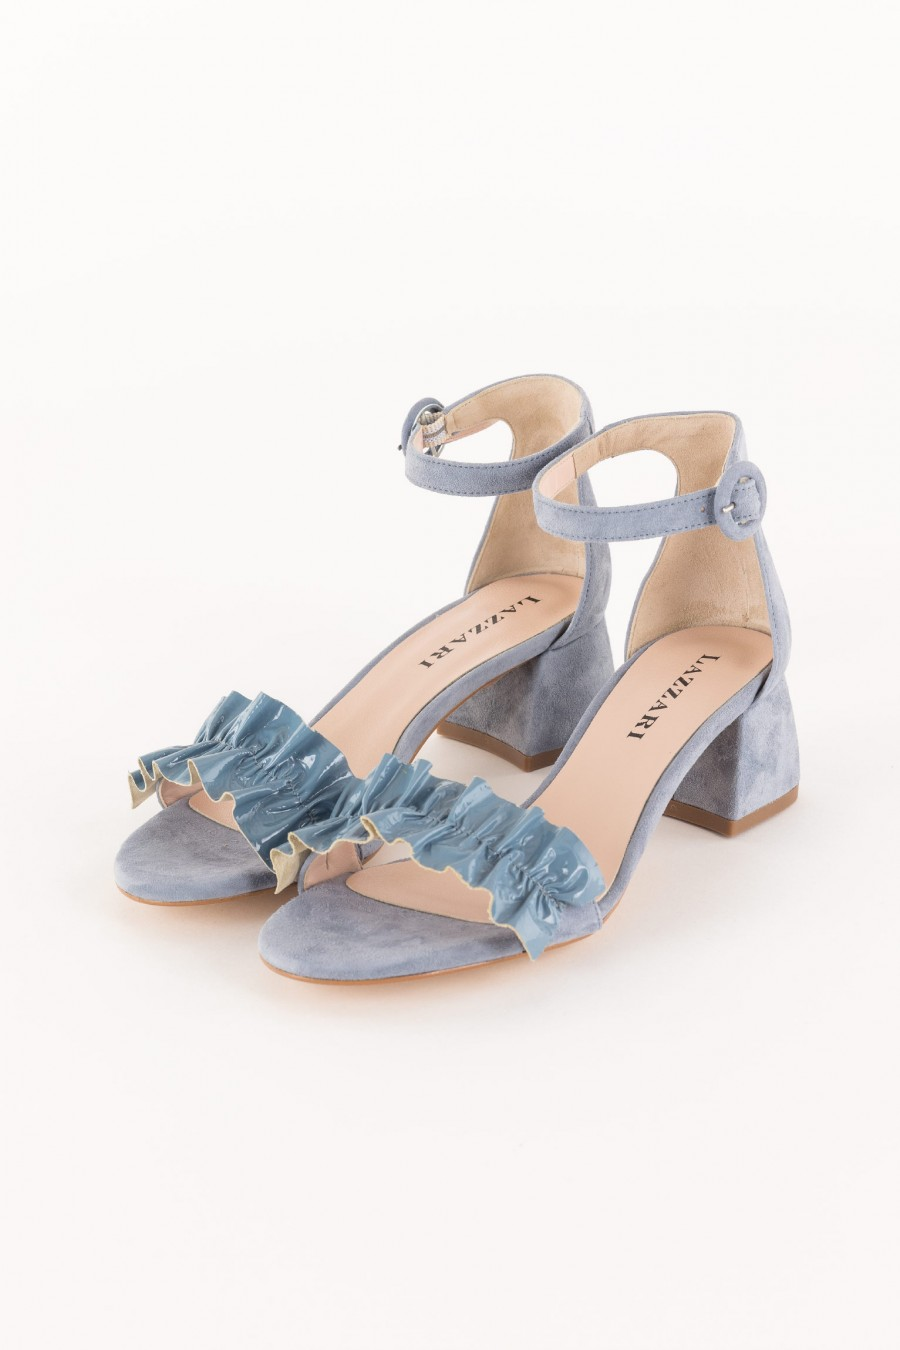 sandal with patent leather ruffle